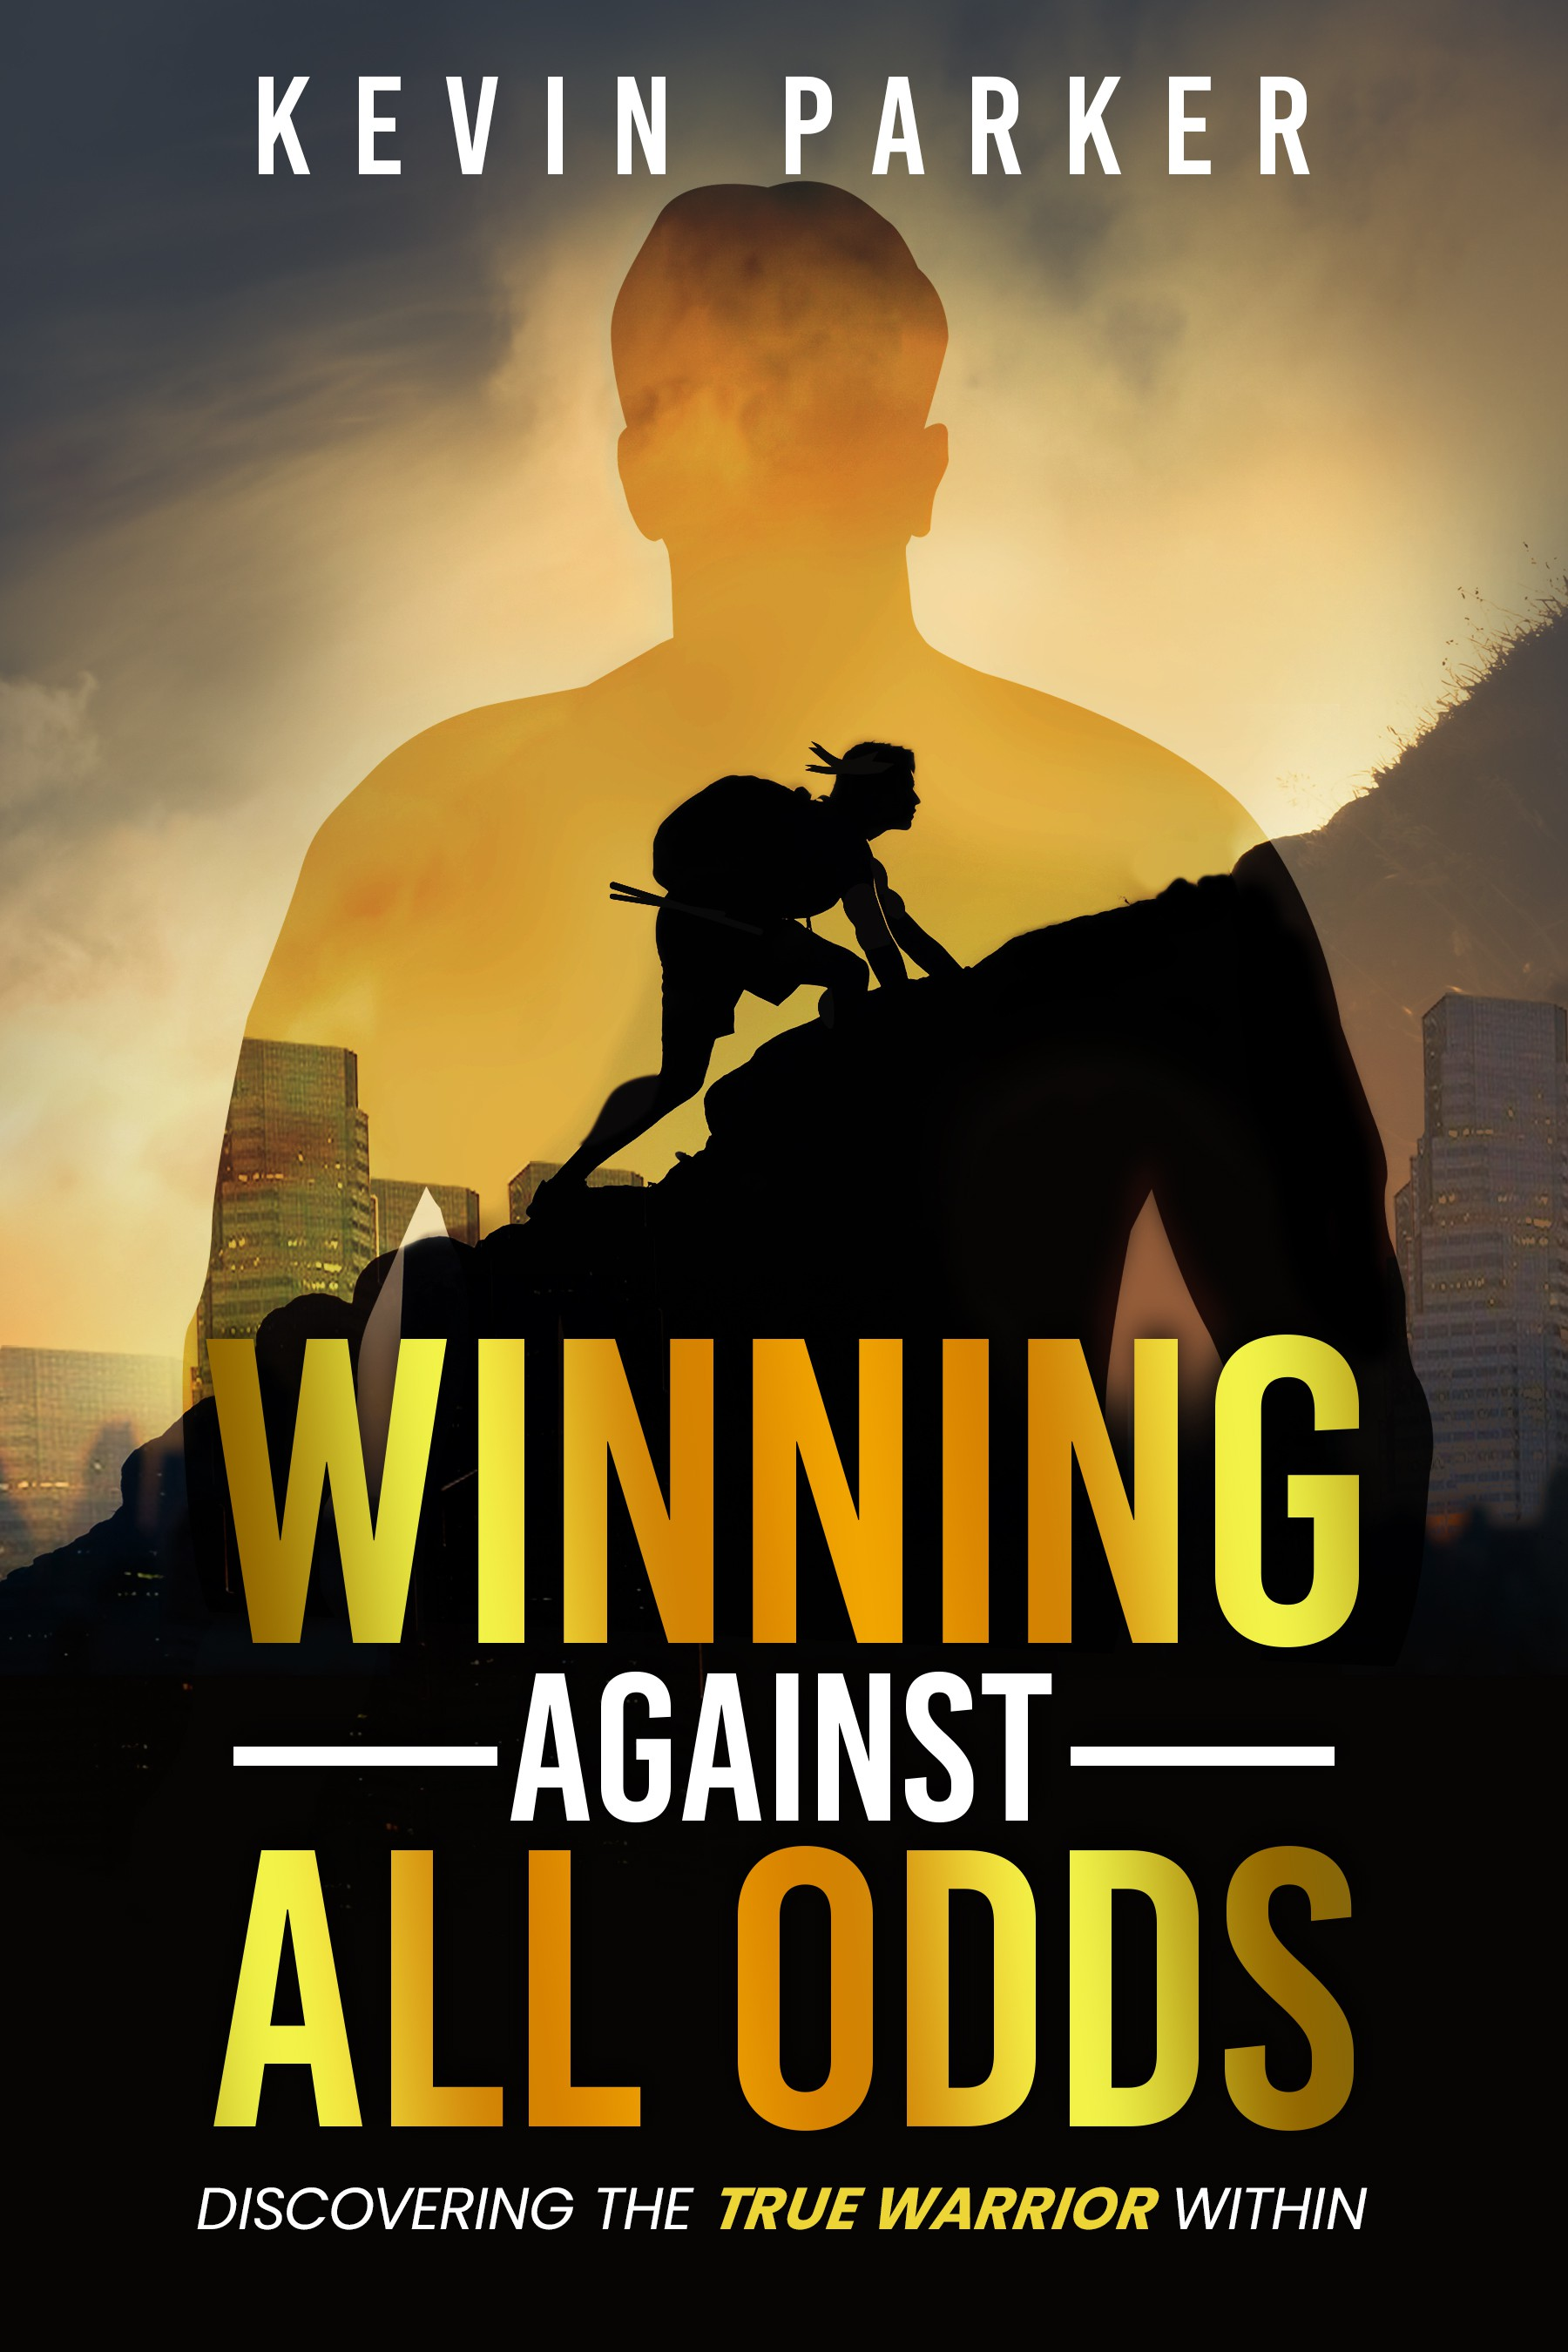 Winning Against All Odds: discover the true warrior within